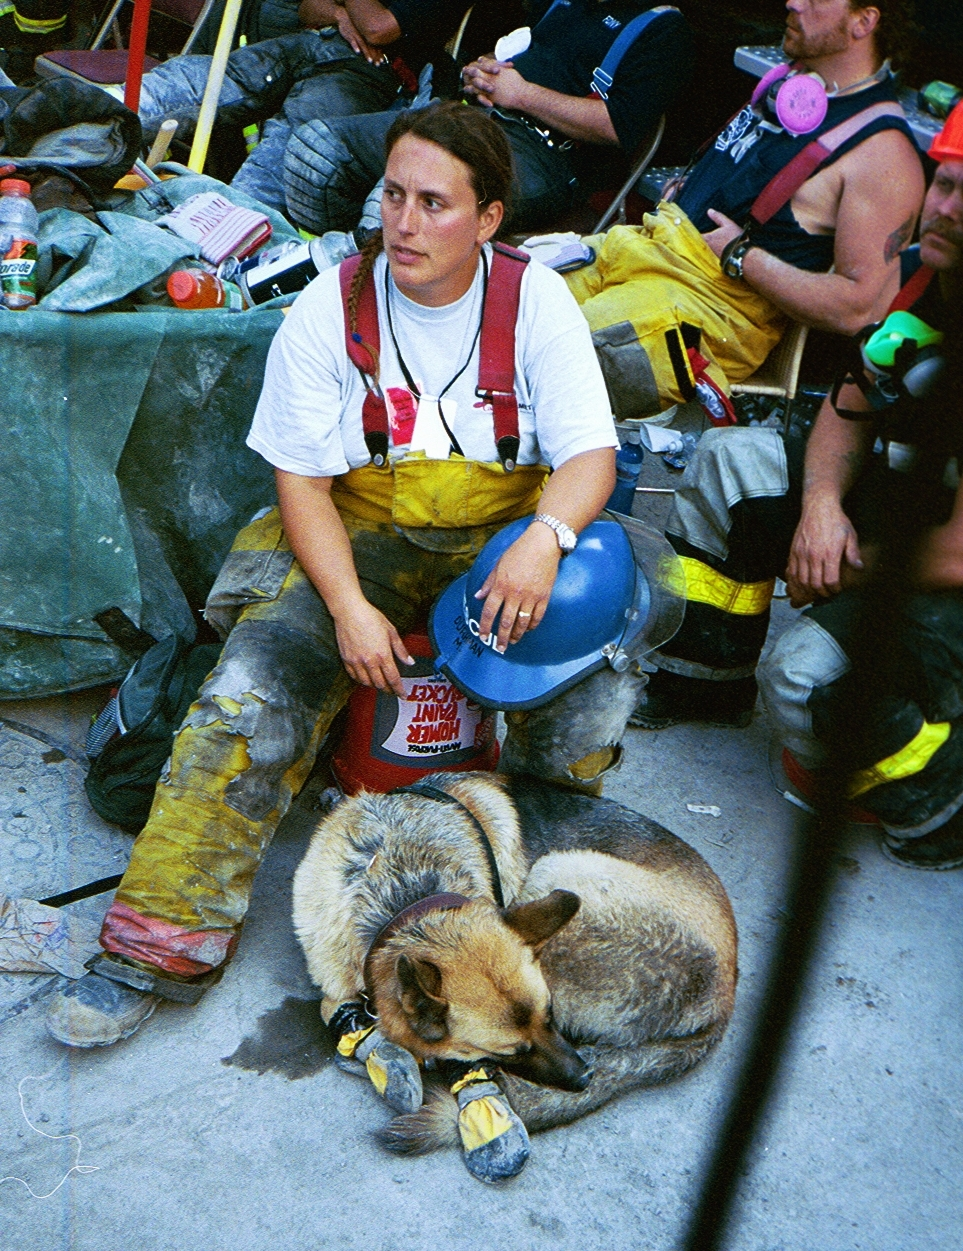 Merlin Durhman and her K9, Kermit, at Ground Zero during 9-11 recovery